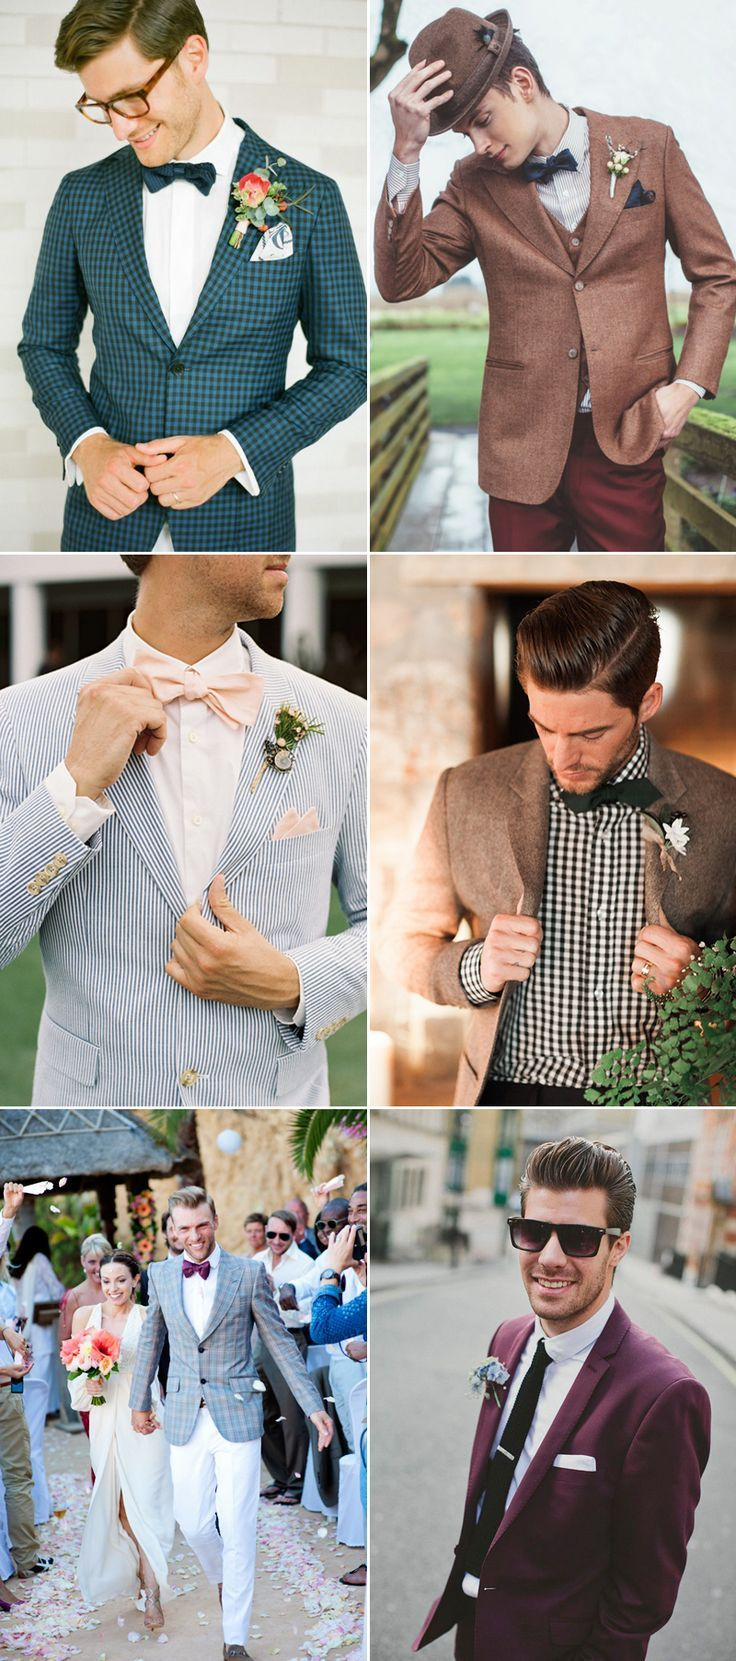 How To Style Your Groom Vintage Ways and Items to Create the Perfect Vintage-Inspired Groom Attire! Find the perfect look for your groom at www.pinterest.com/laurenweds/wedding-groom?utm_content=bufferf36a7&utm_medium=social&utm_source=pinterest.com&utm_campaign=buffer